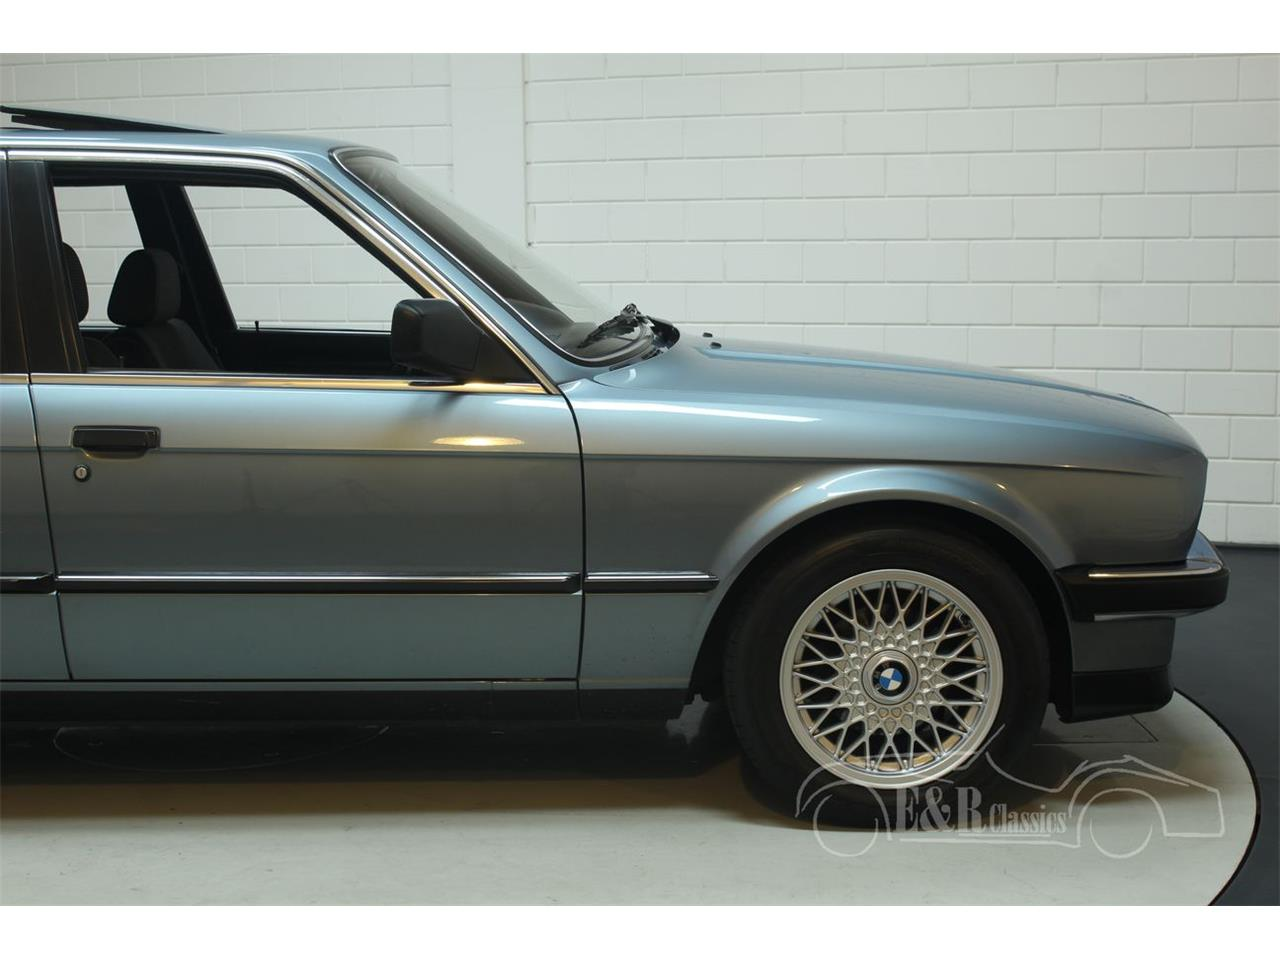 Large Picture of 1986 325i - $33,850.00 Offered by E & R Classics - PGT1